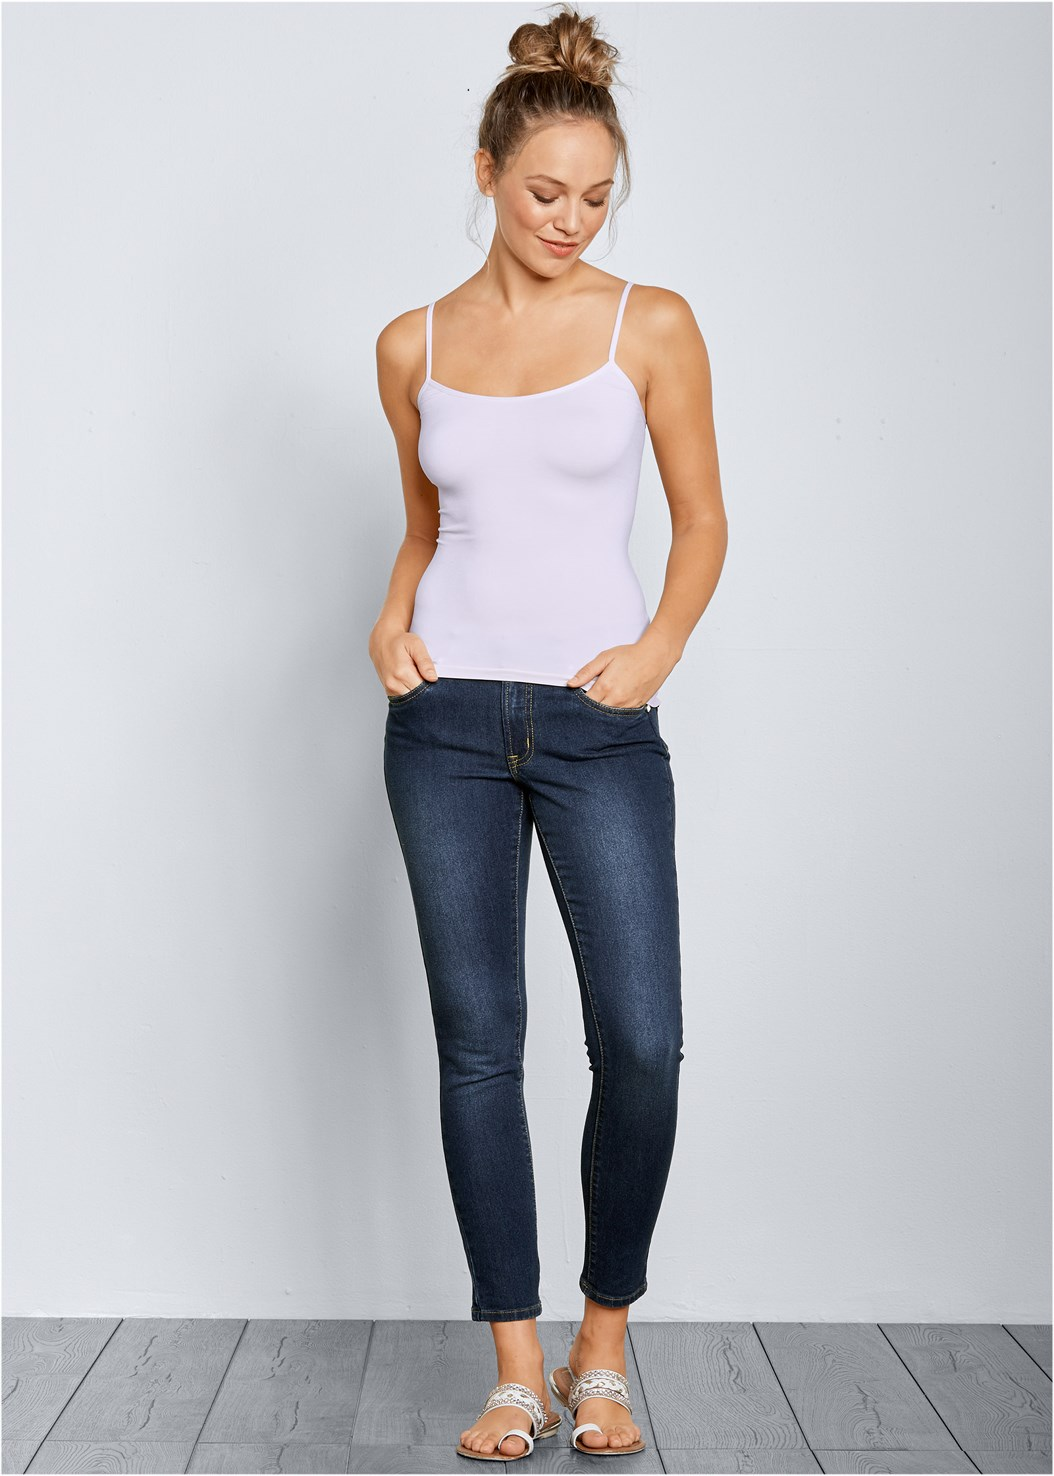 Mid Rise Color Skinny Jeans,Studded Satchel Crossbody,Mid Rise Slimming Stretch Jeggings,Basic Cami Two Pack